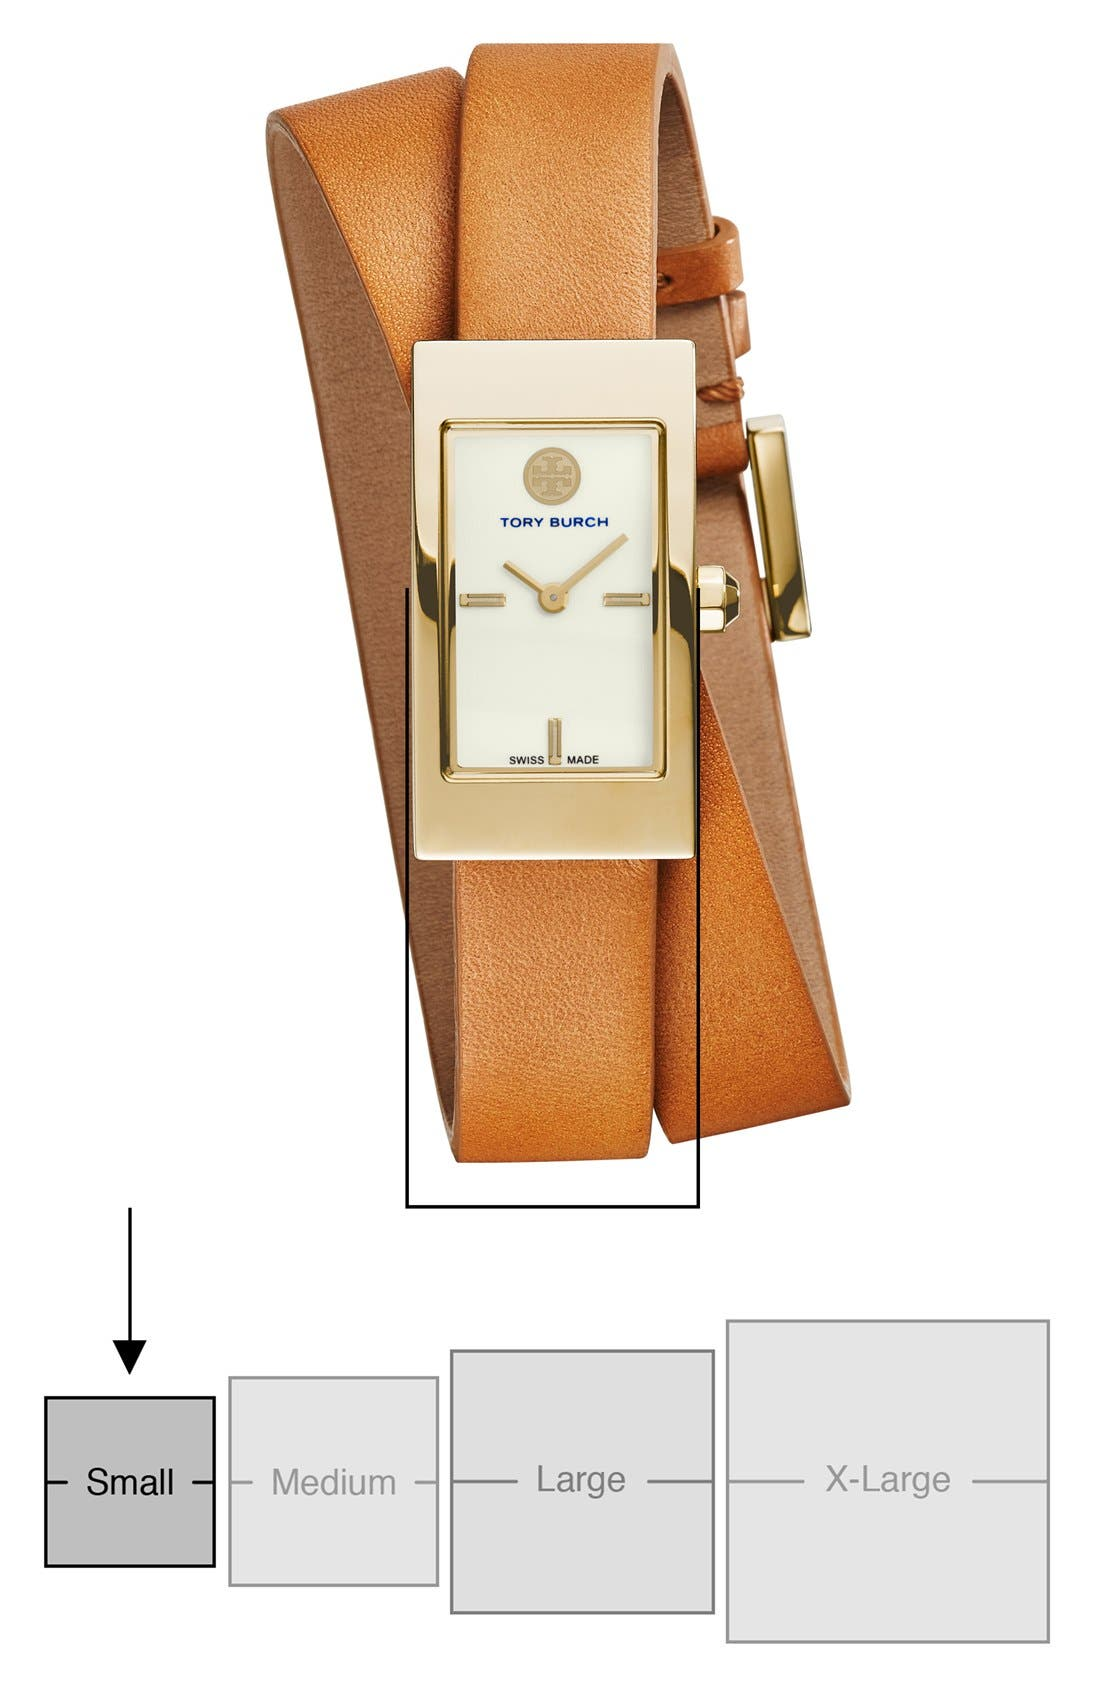 'Buddy Signature' Rectangular Wrap Leather Strap Watch, 17mm x 31mm,                             Alternate thumbnail 7, color,                             Luggage/ Gold